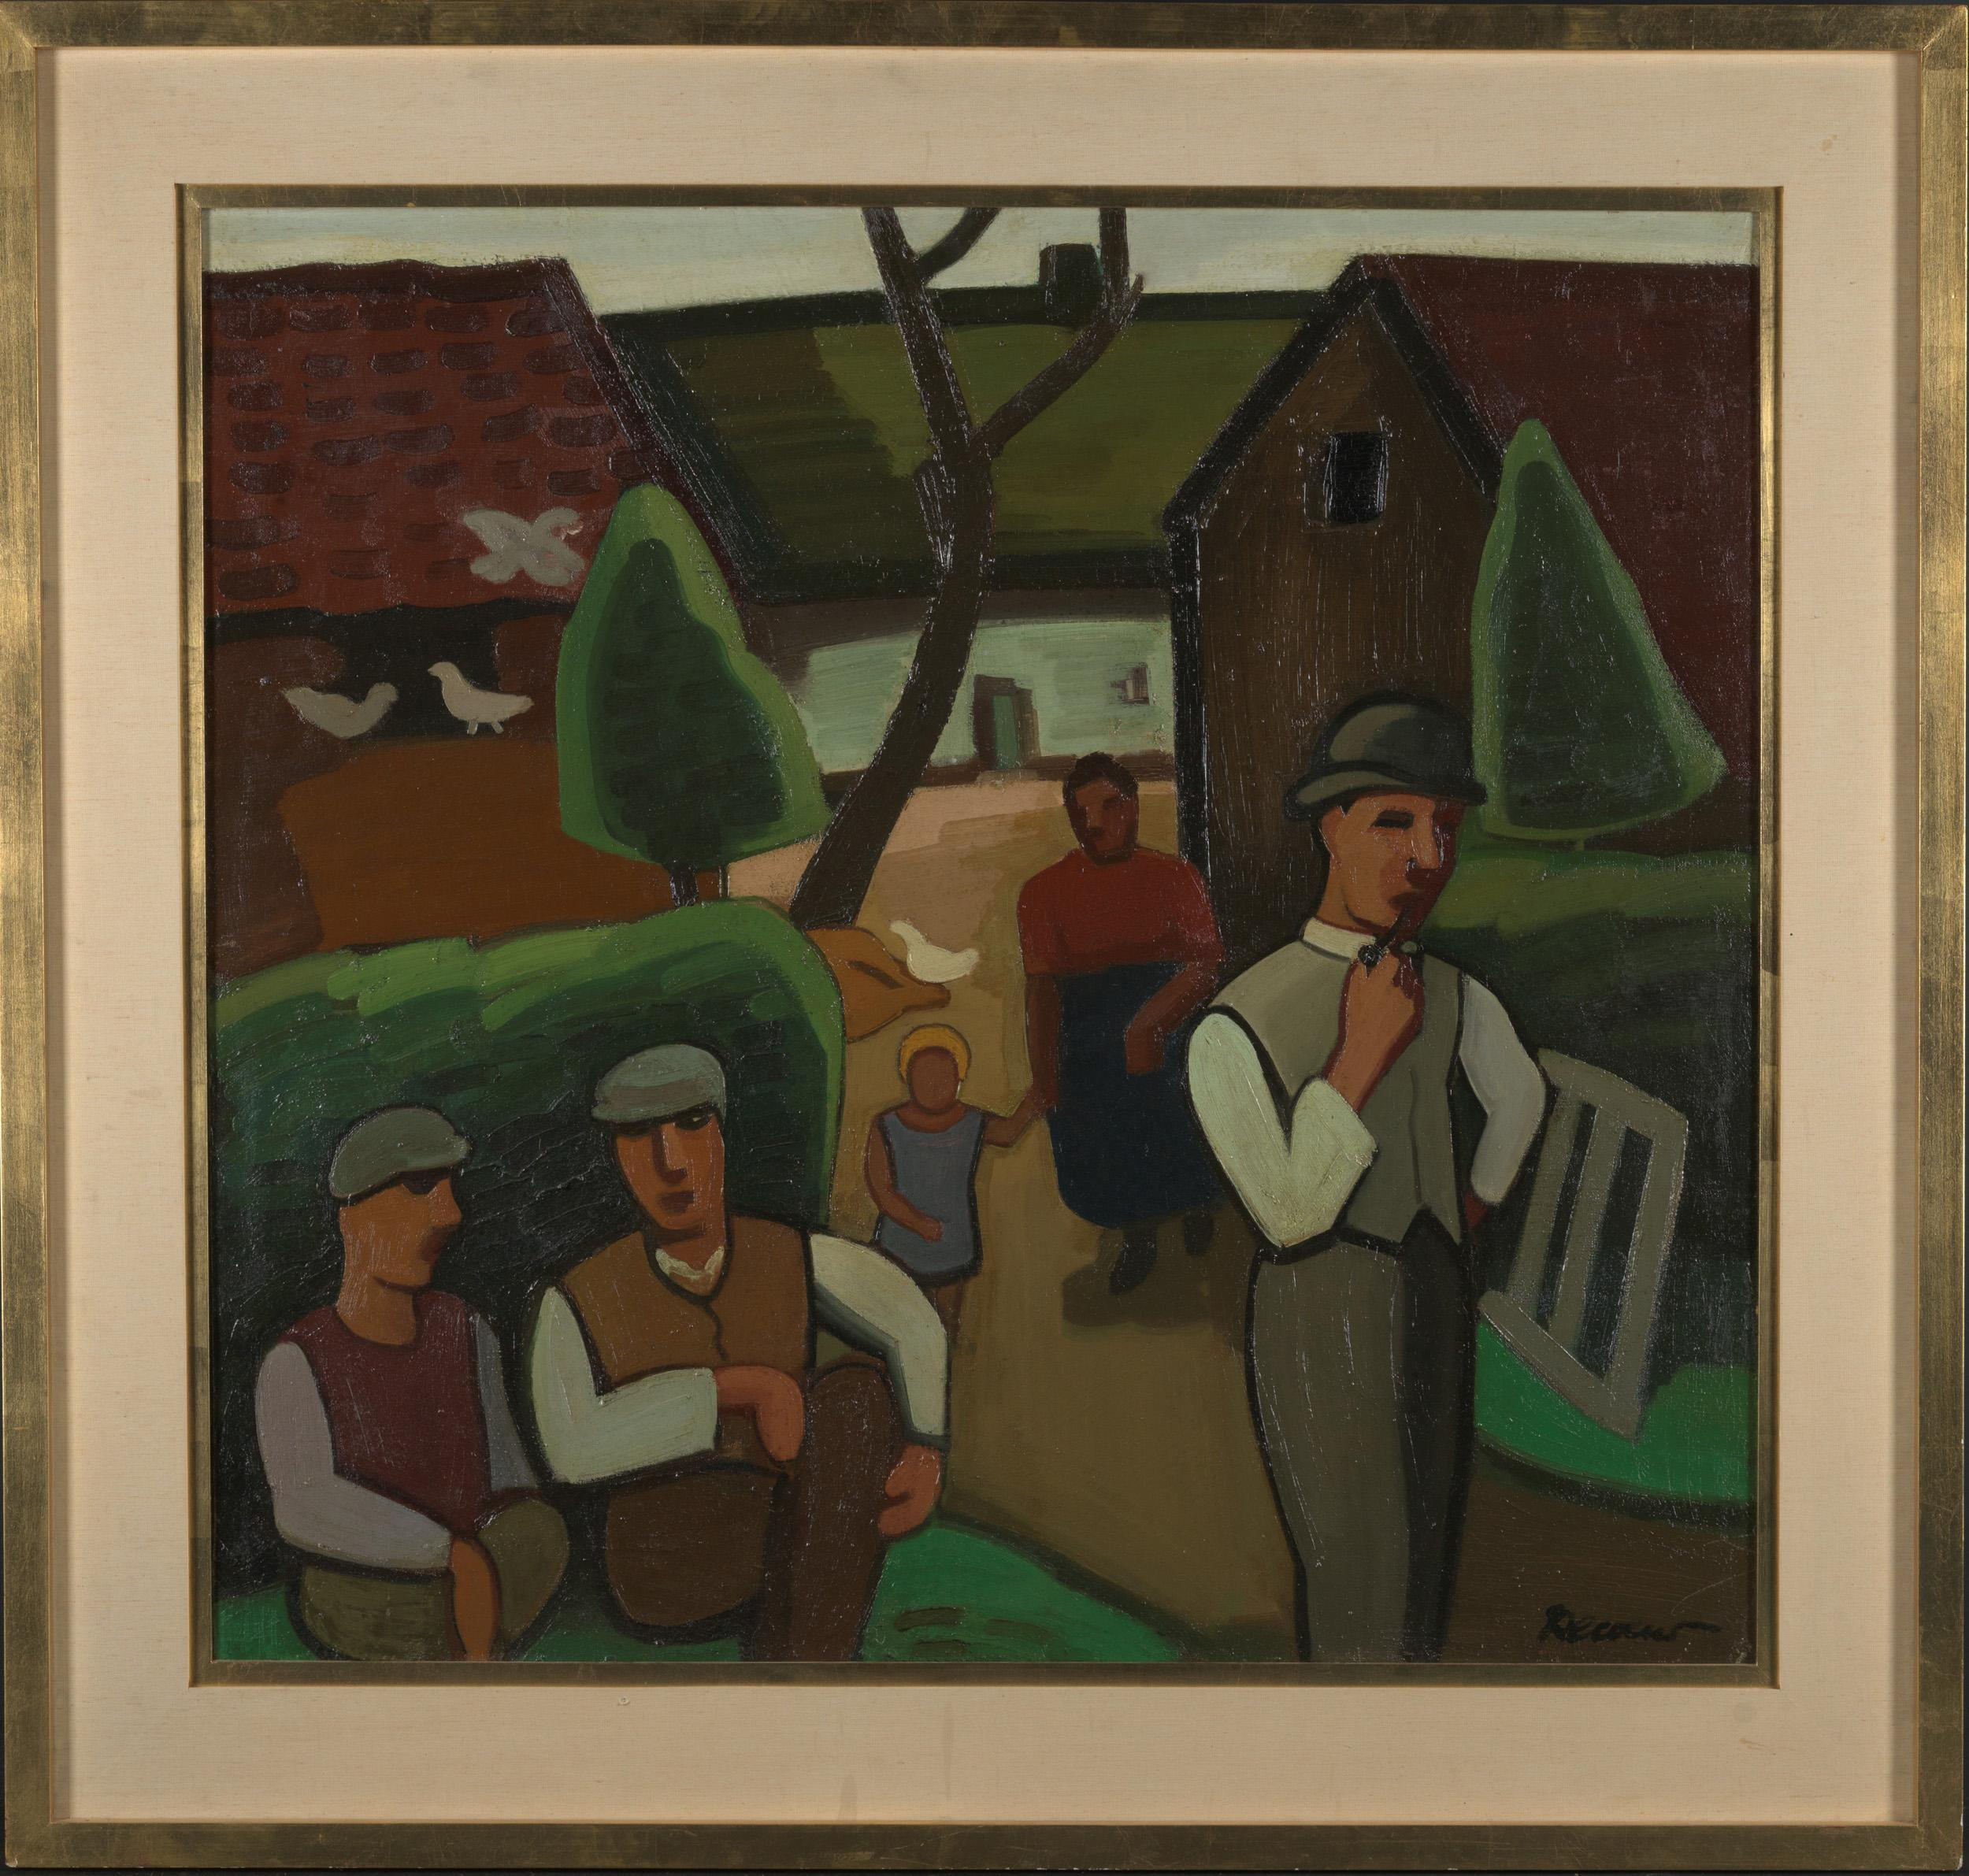 Farming Family on a Sunday Morning, Oil on Canvas. Framed and Signed